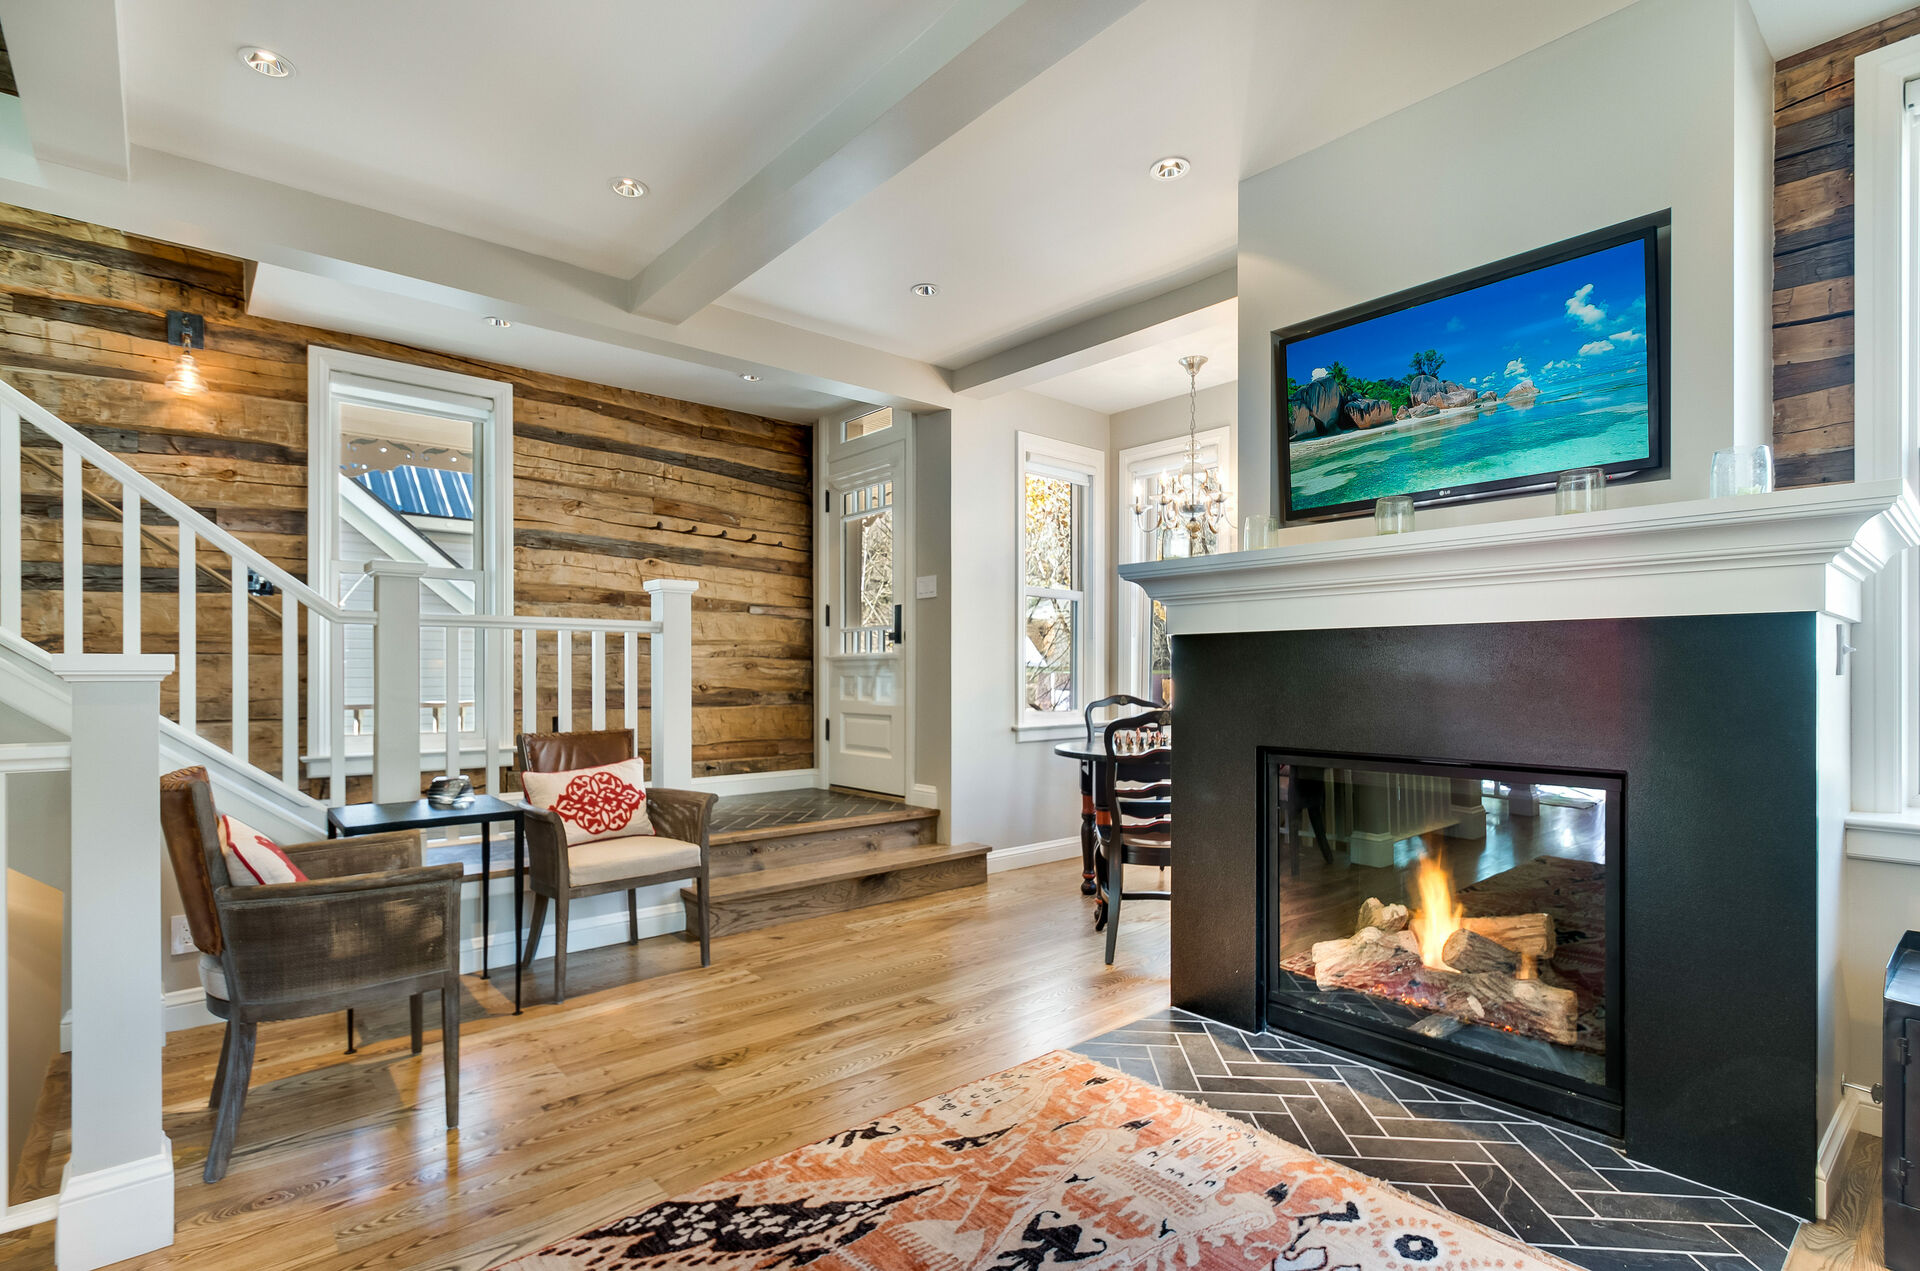 Fireplace and Seating for Reading at Vacation Home in Telluride